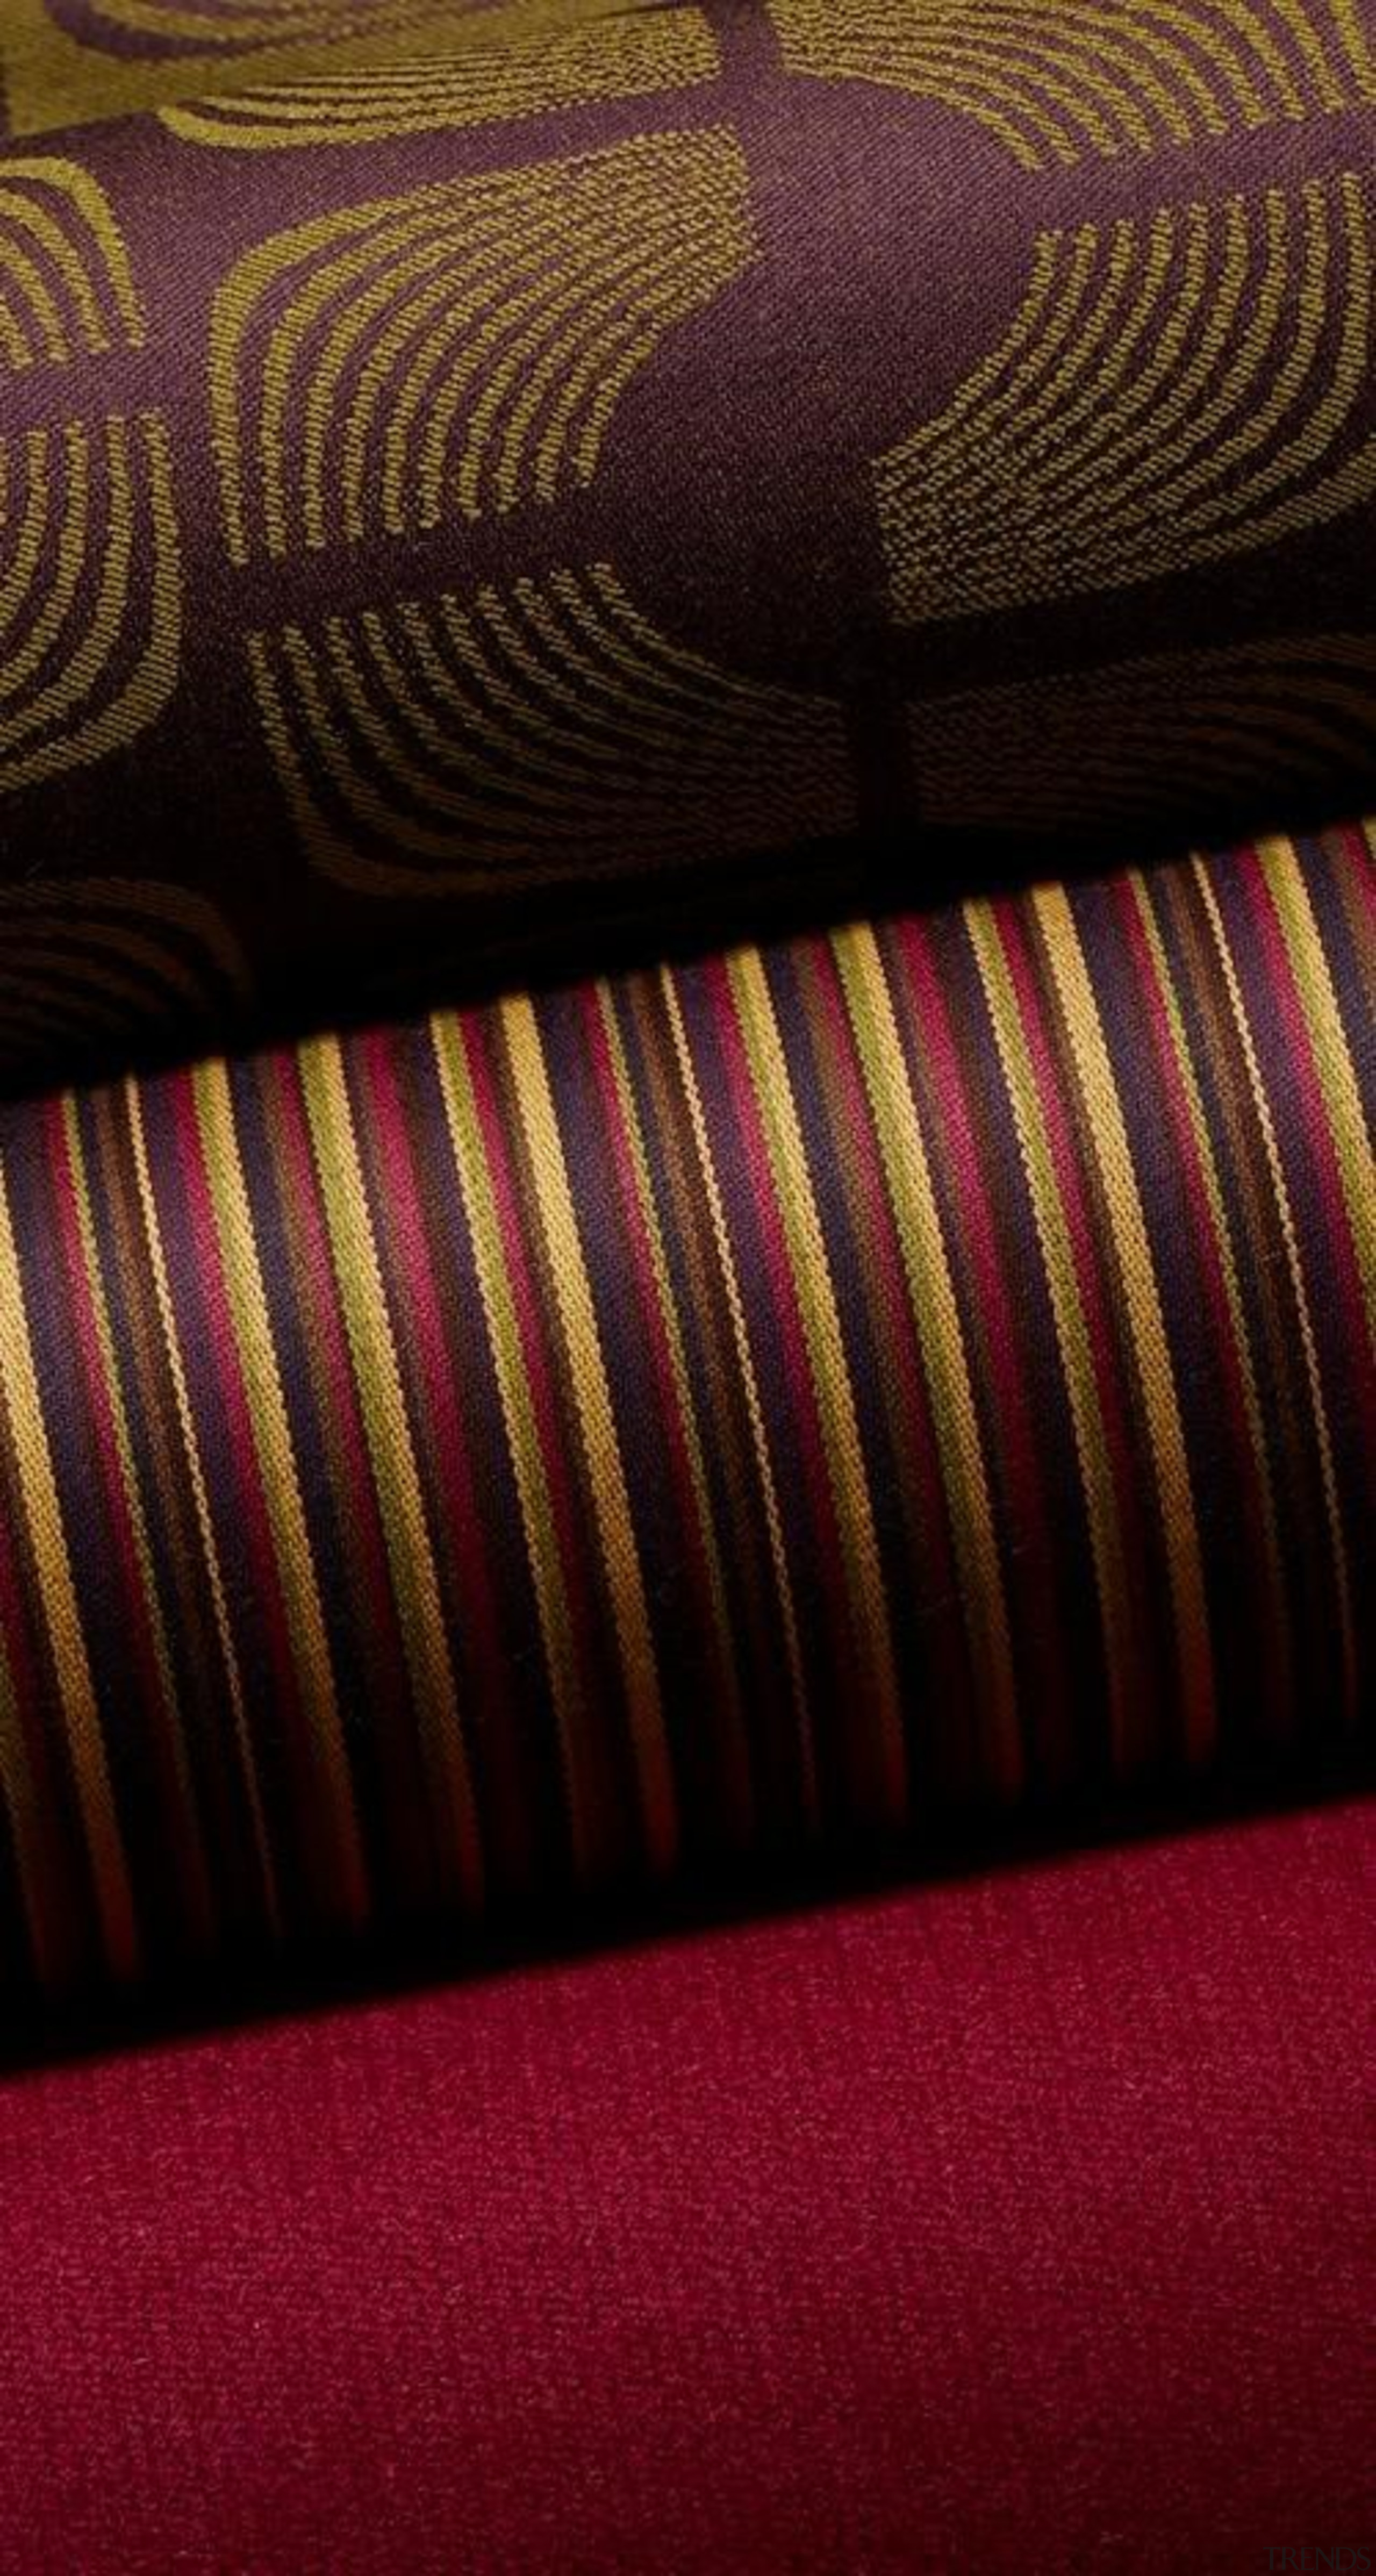 Interchange - Interchange - close up | couch close up, couch, flooring, light, line, magenta, pattern, textile, red